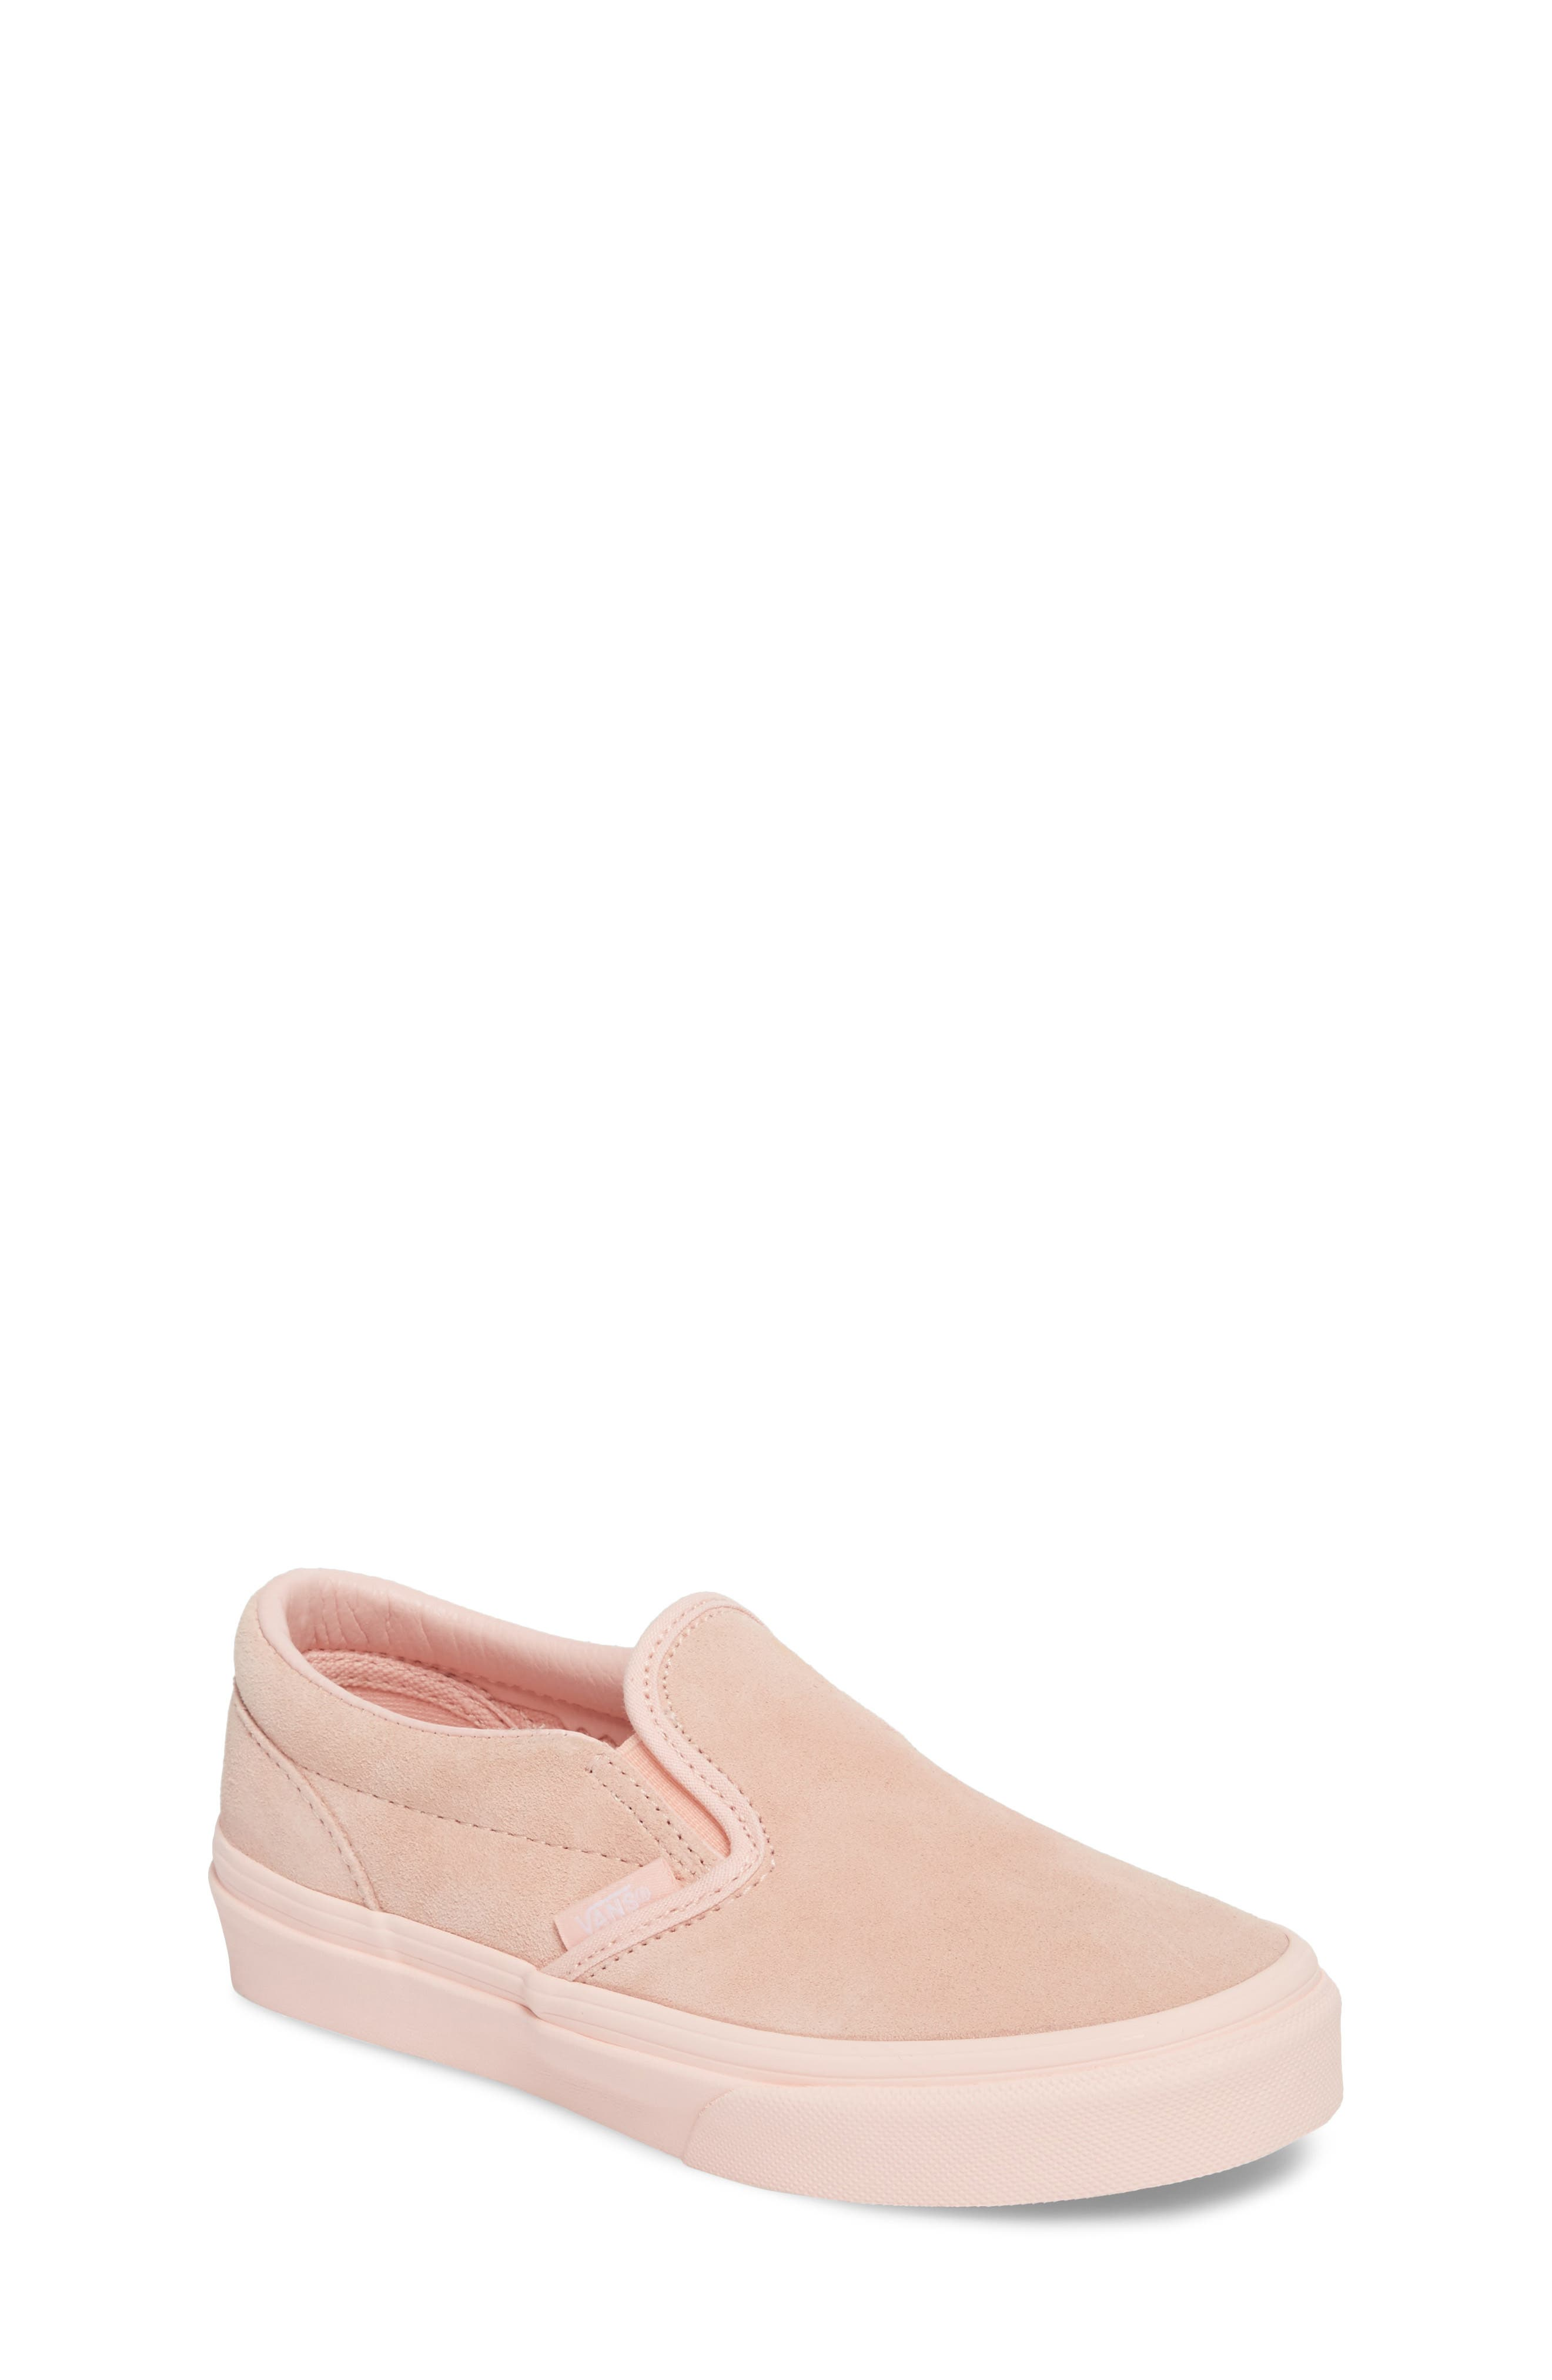 Classic Slip-On Sneaker,                             Main thumbnail 1, color,                             Suede Mono/ English Rose